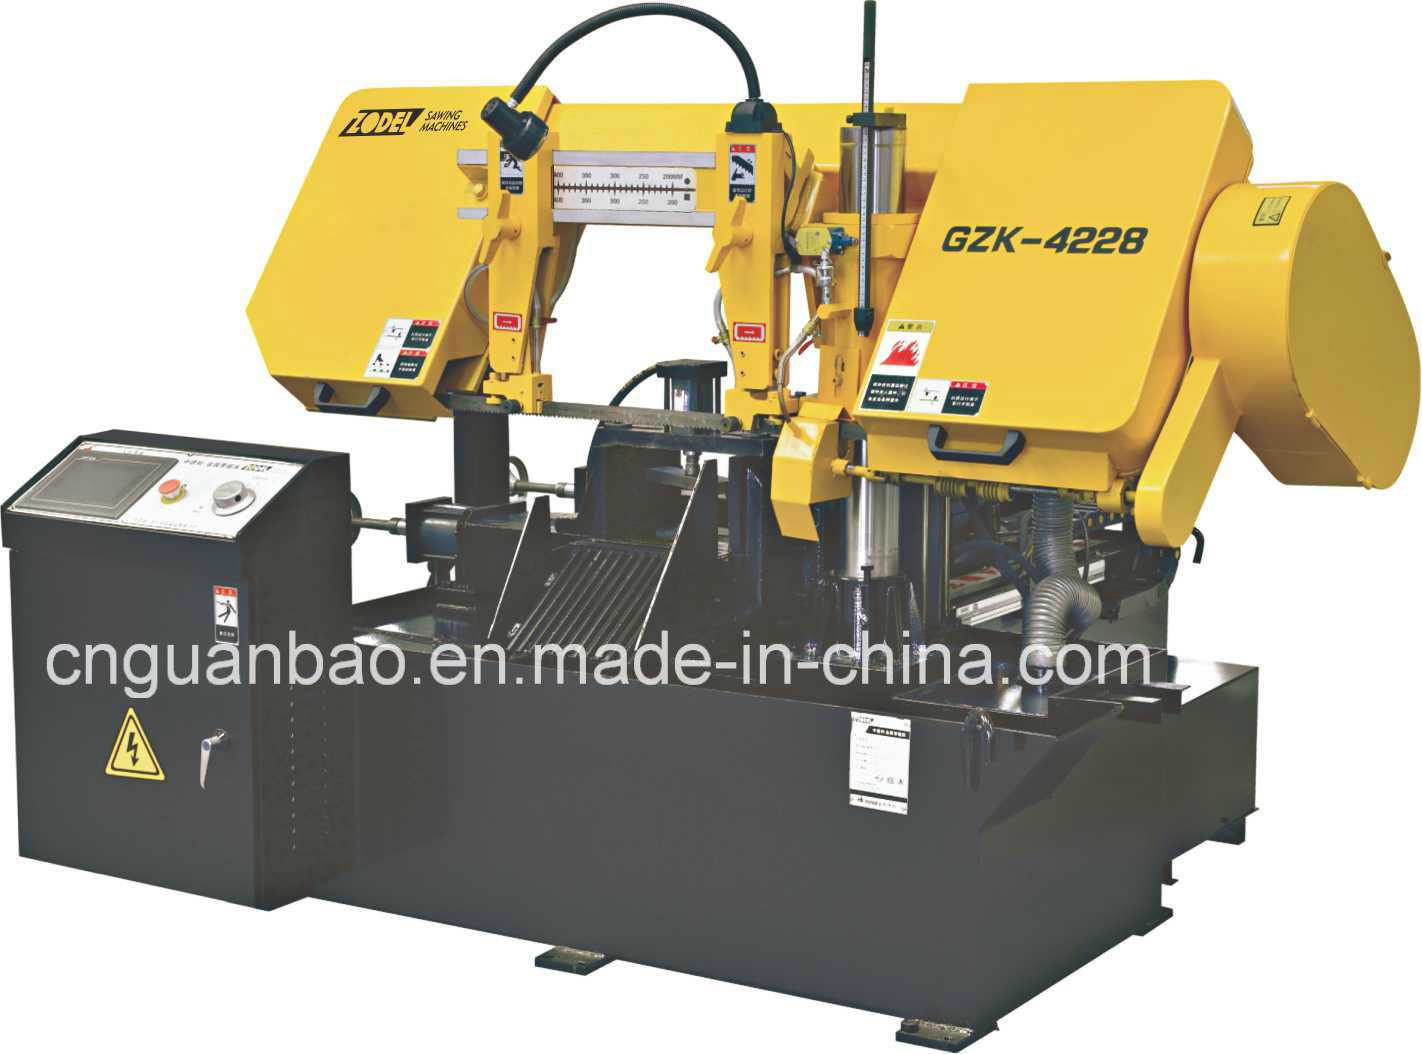 Mini CNC Band Saw Machine Gzk4228 pictures & photos